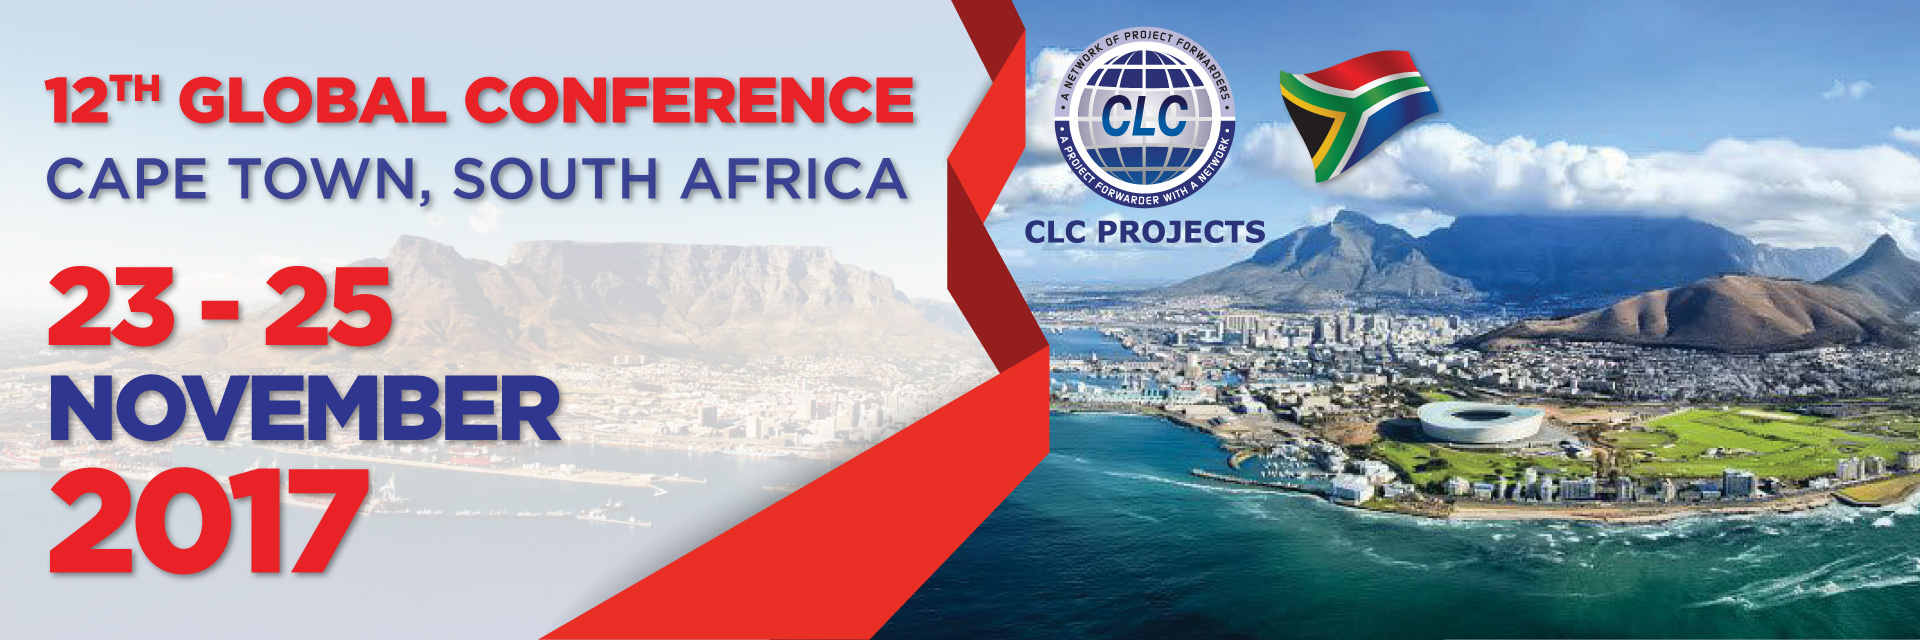 Cape Town Conference